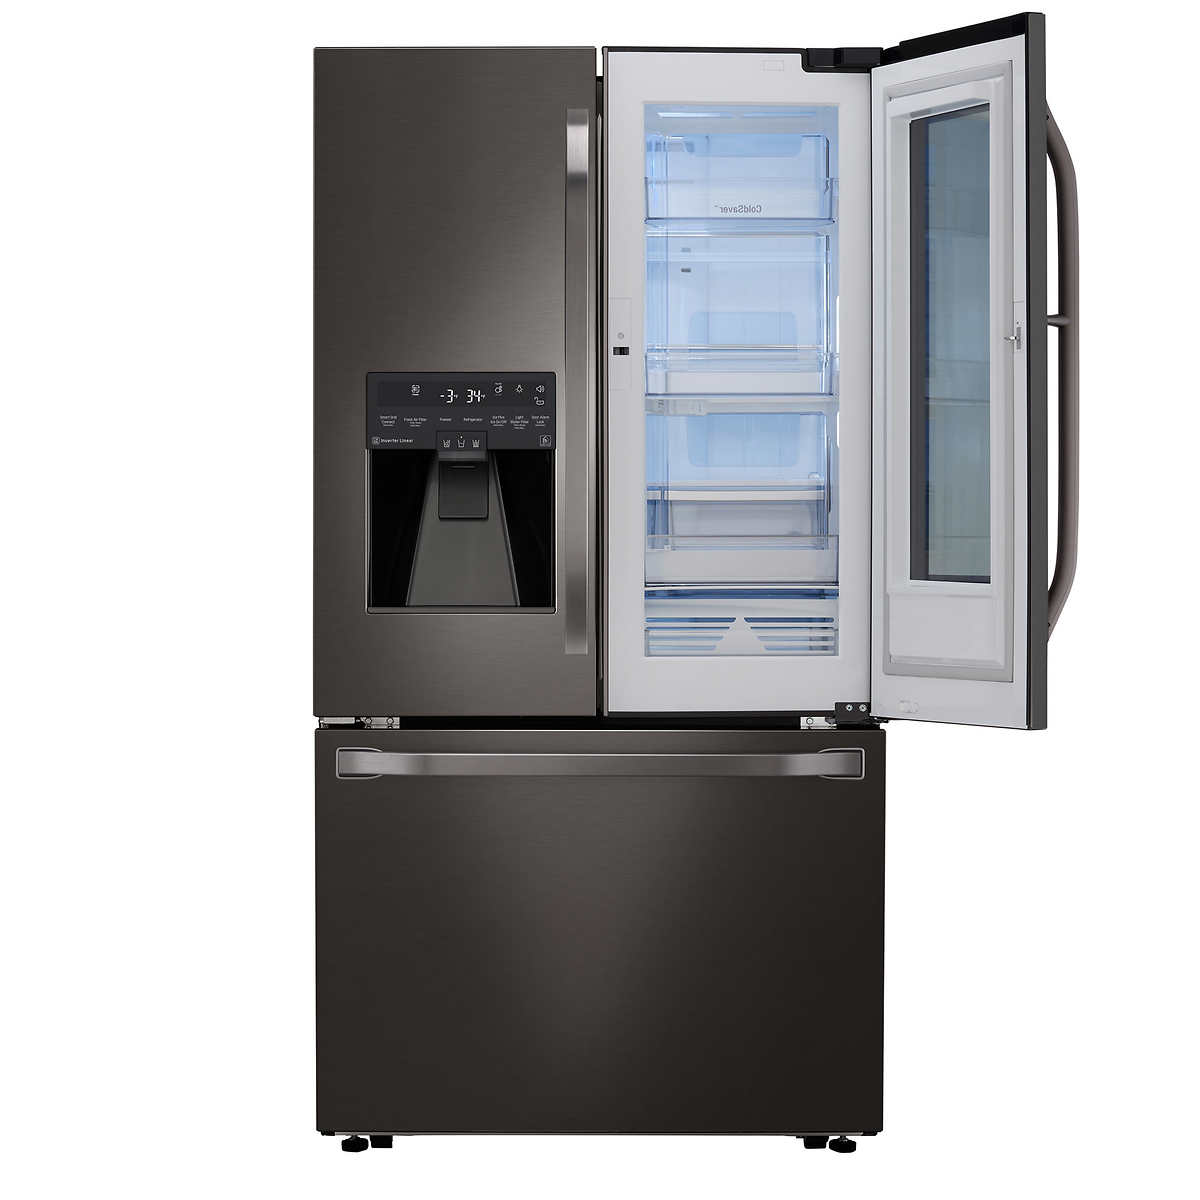 Should you buy a refrigerator without an ice maker?